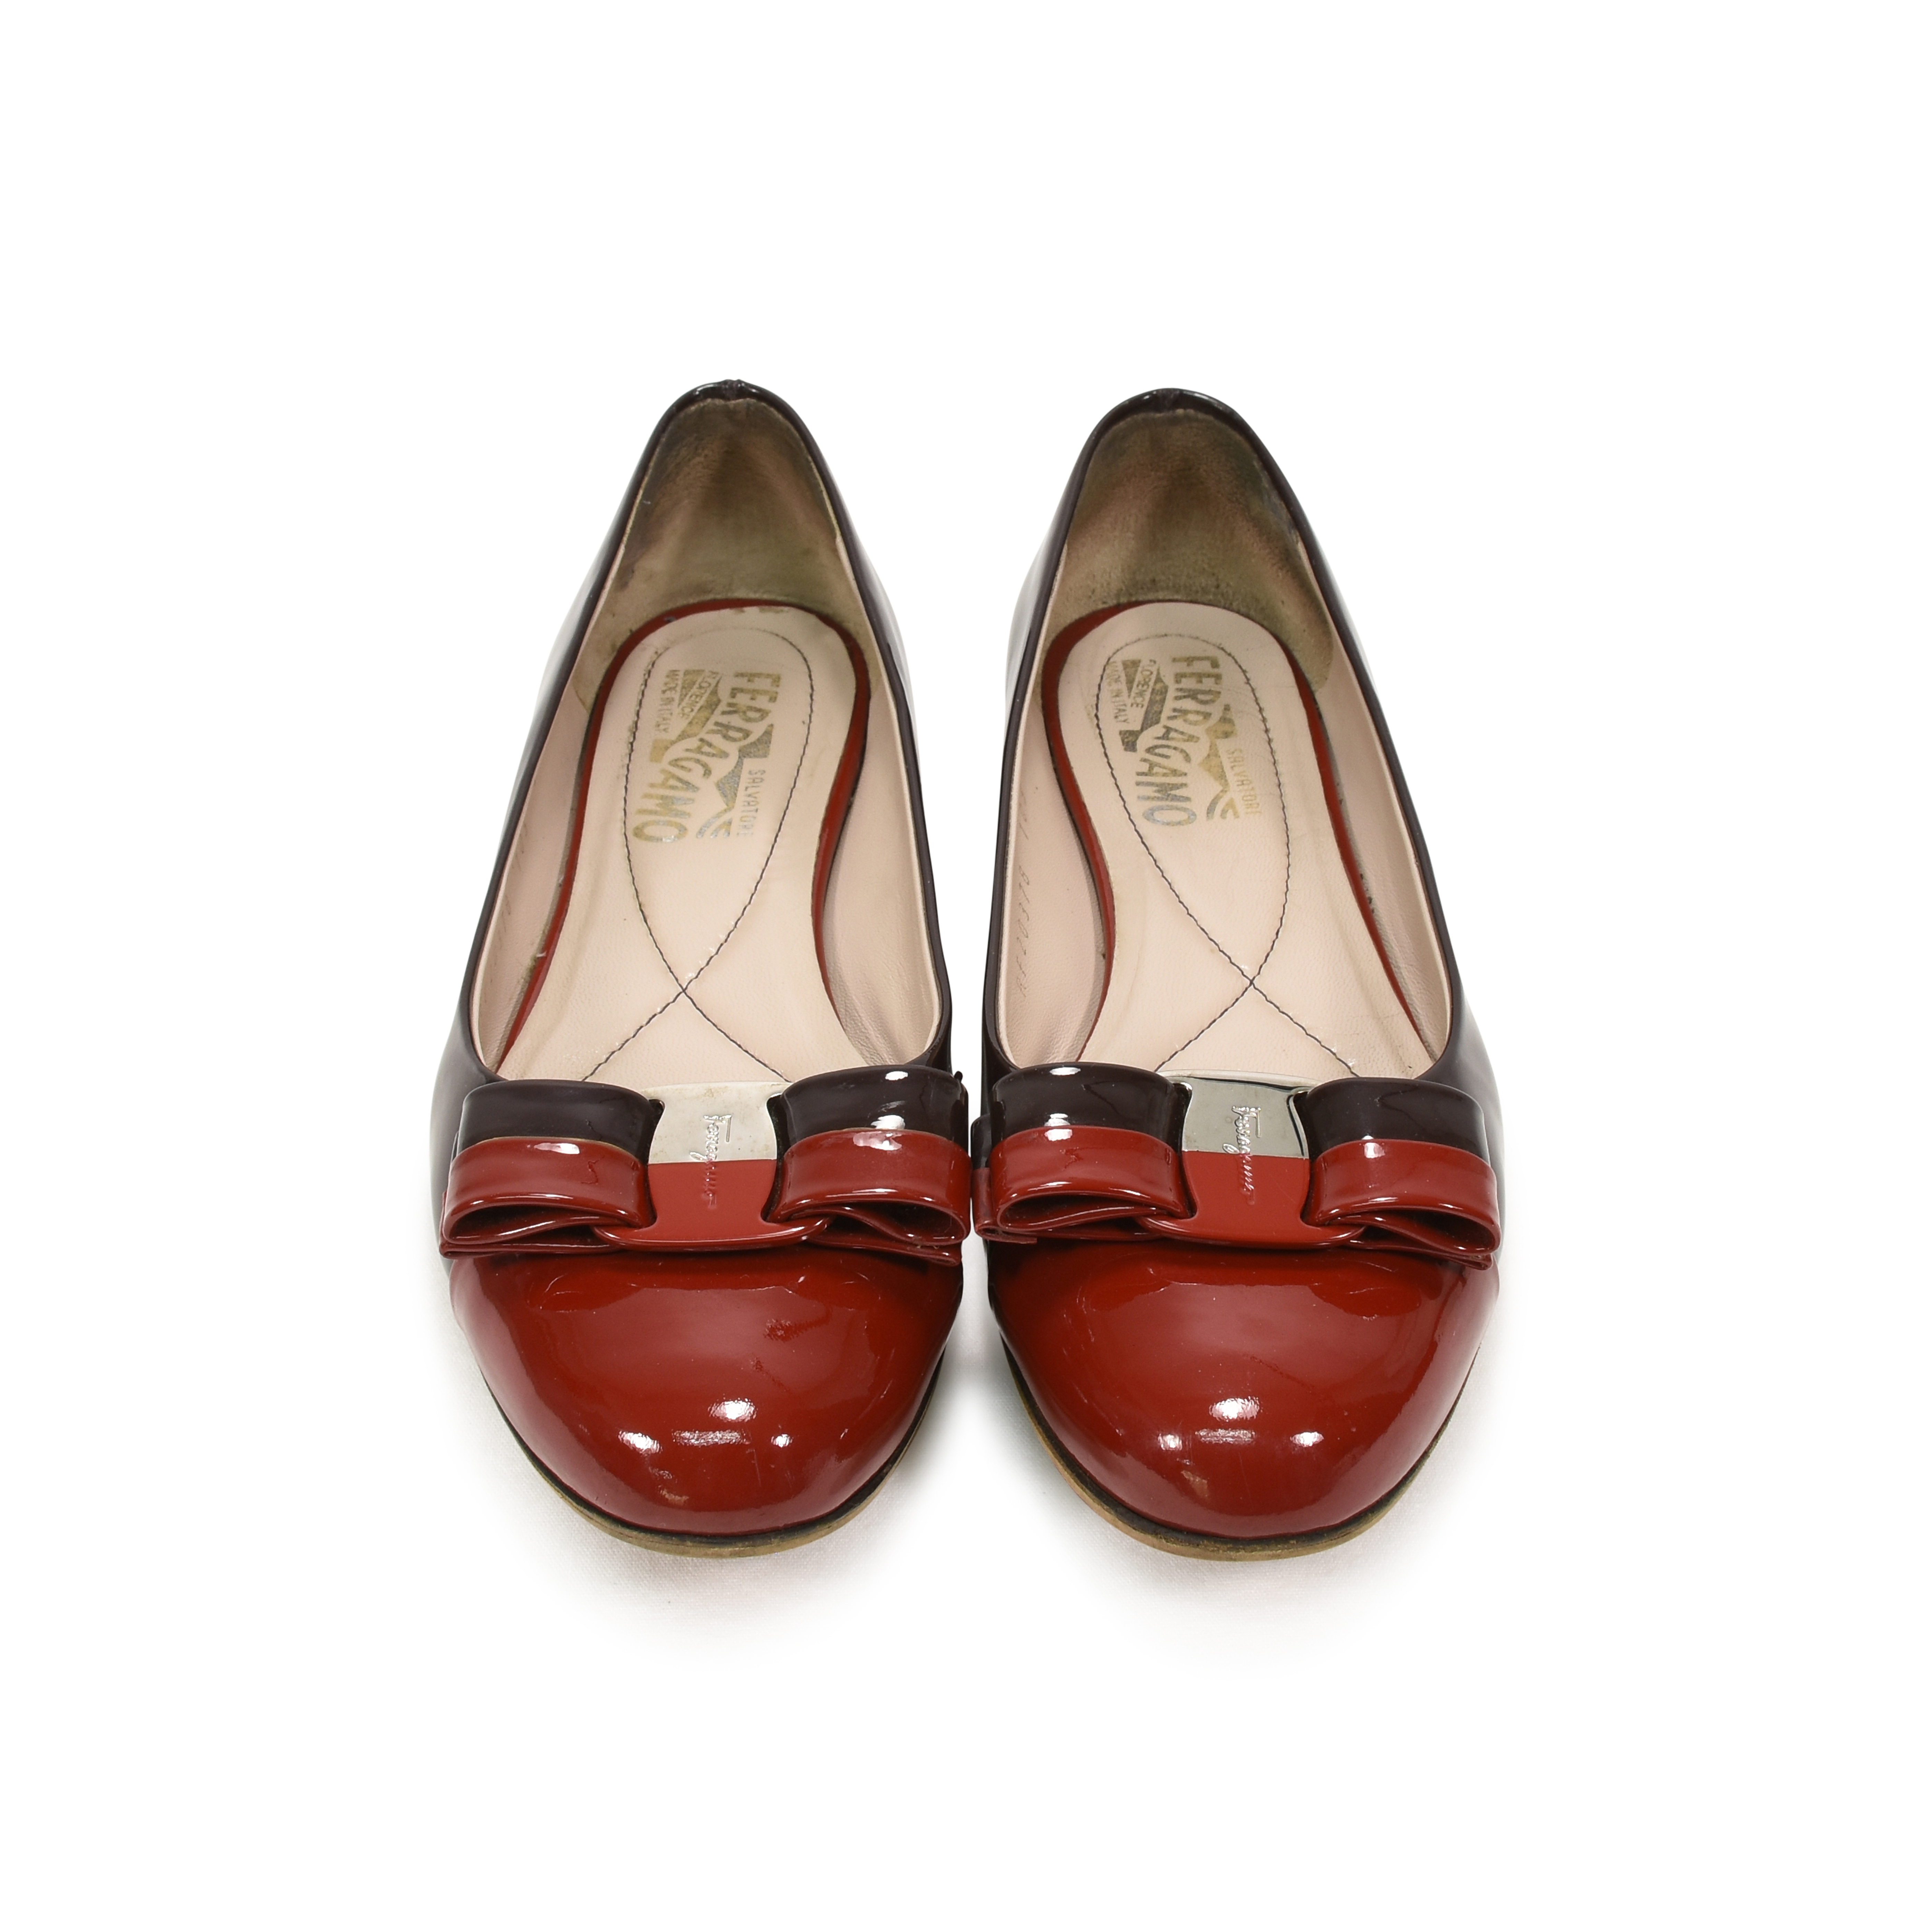 2bb9d4a85f55d Authentic Second Hand Salvatore Ferragamo Varina Two-Toned Flats  (PSS-344-00001) - THE FIFTH COLLECTION